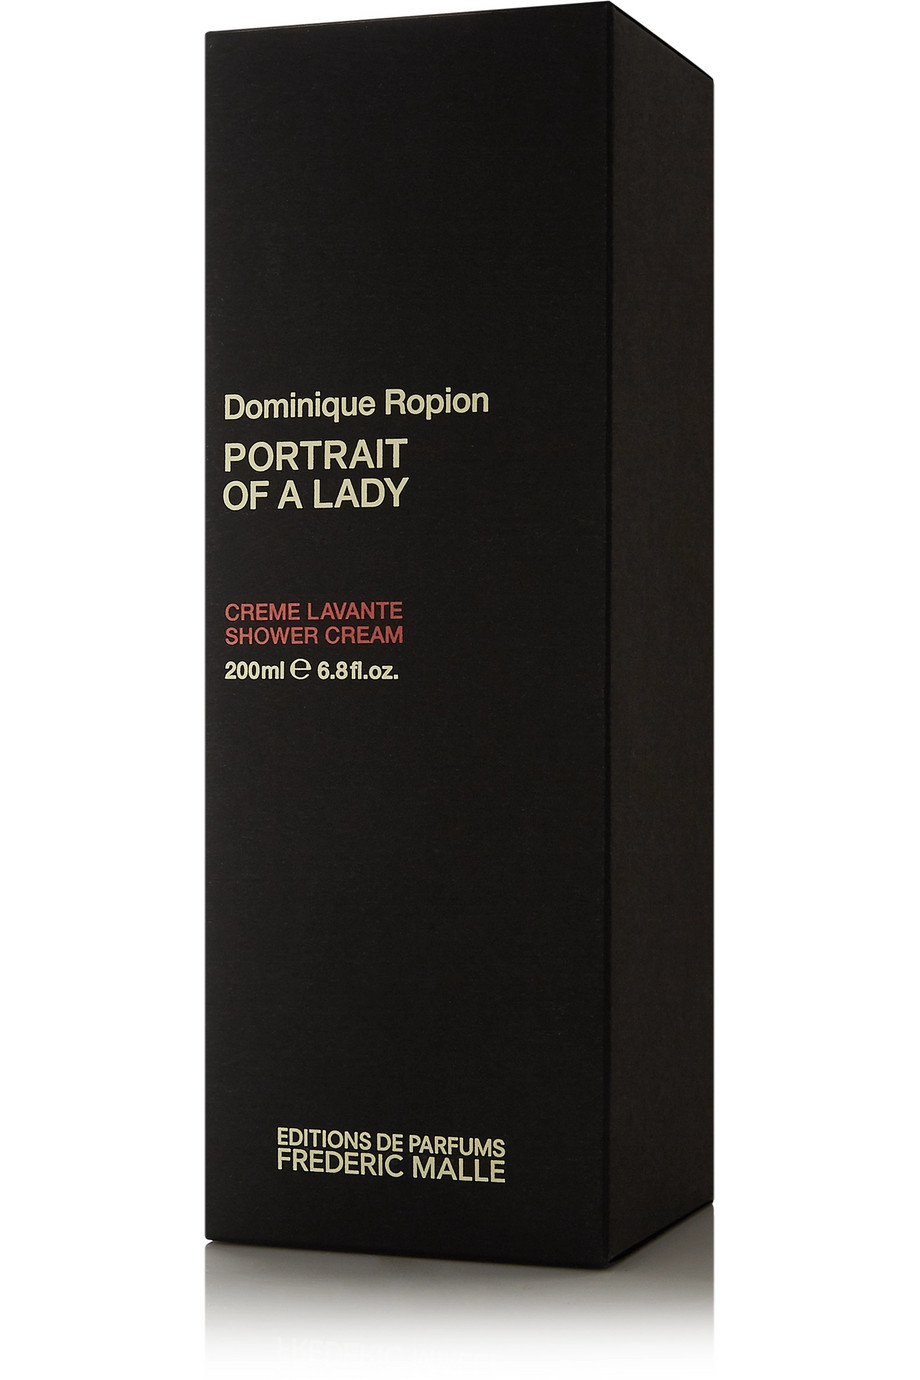 Frederic Malle Portrait of a Lady Shower Cream, 200ml